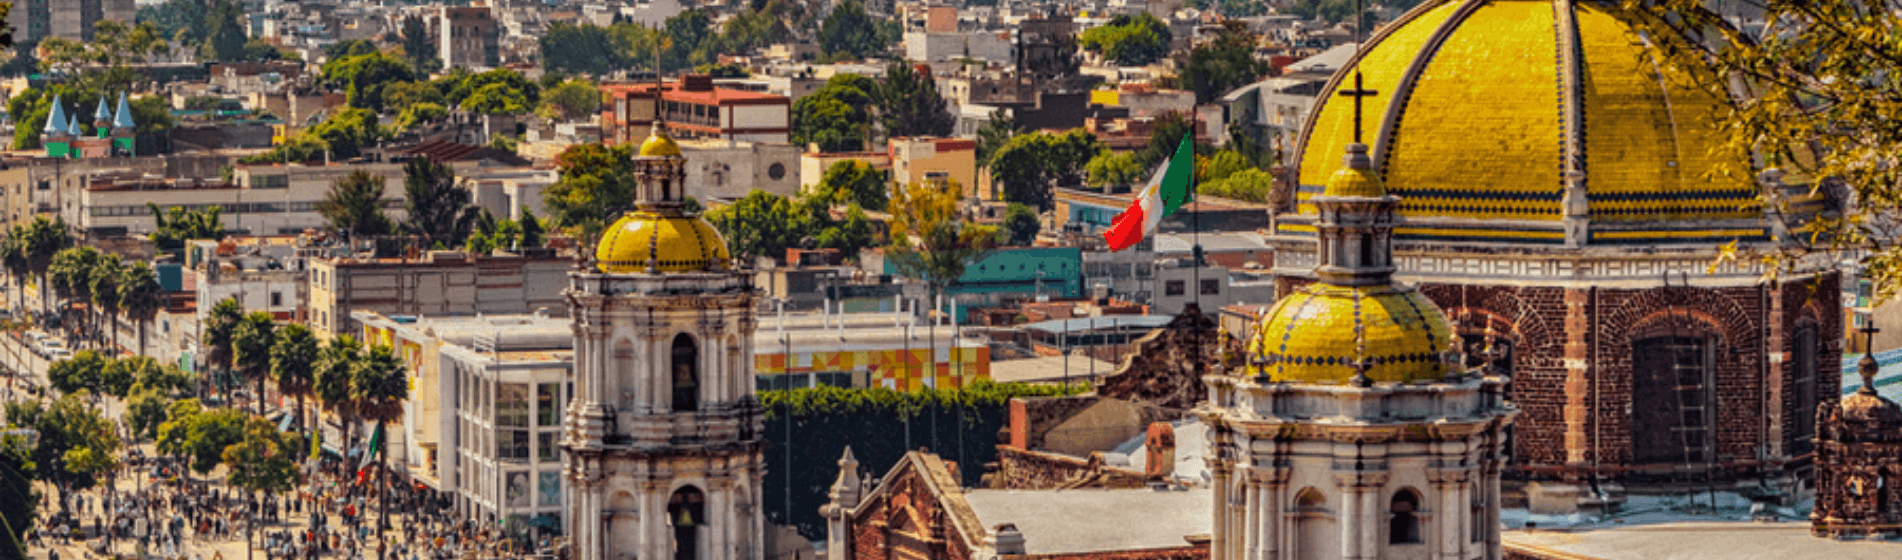 Five Things I Love About Mexico City